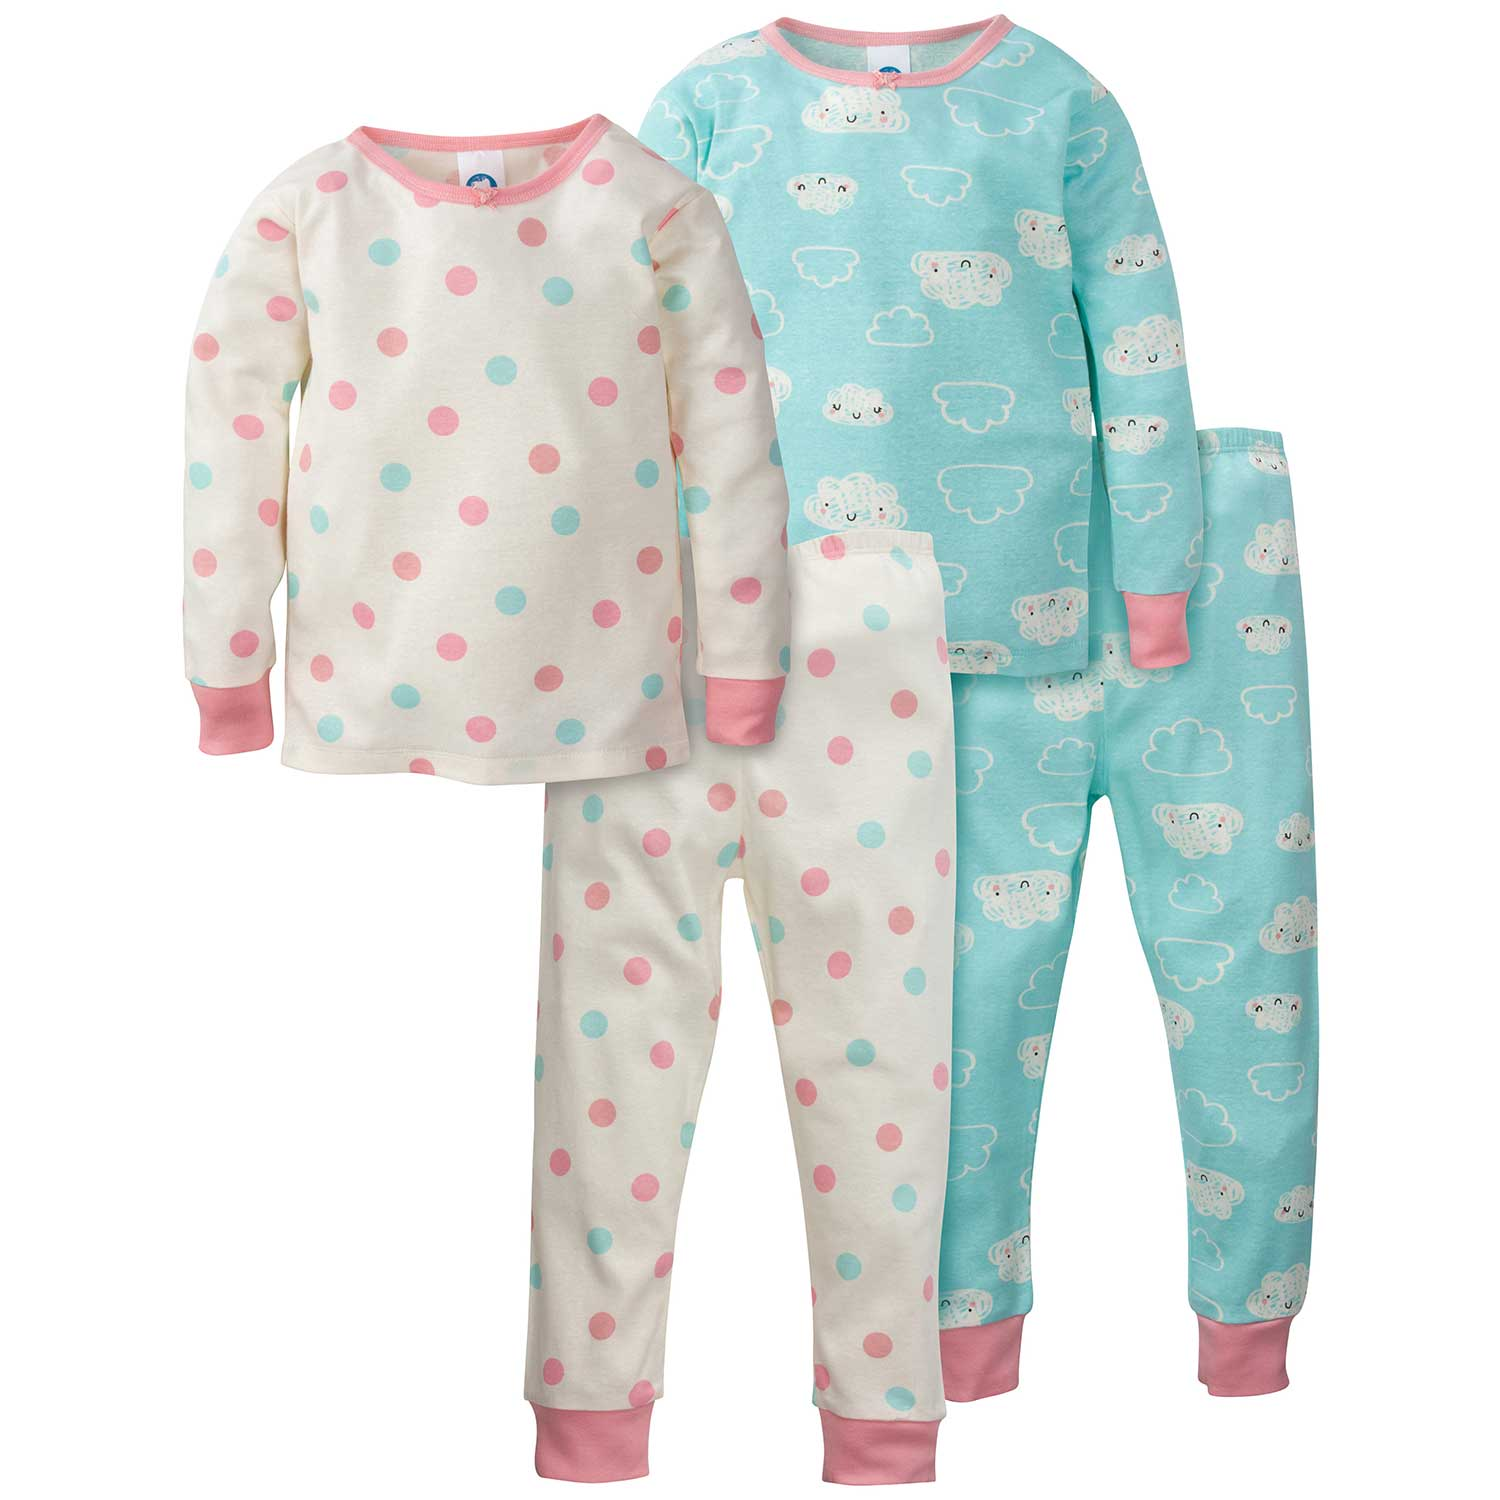 4-Piece Girls Organic Pajama Set - Clouds/Dots